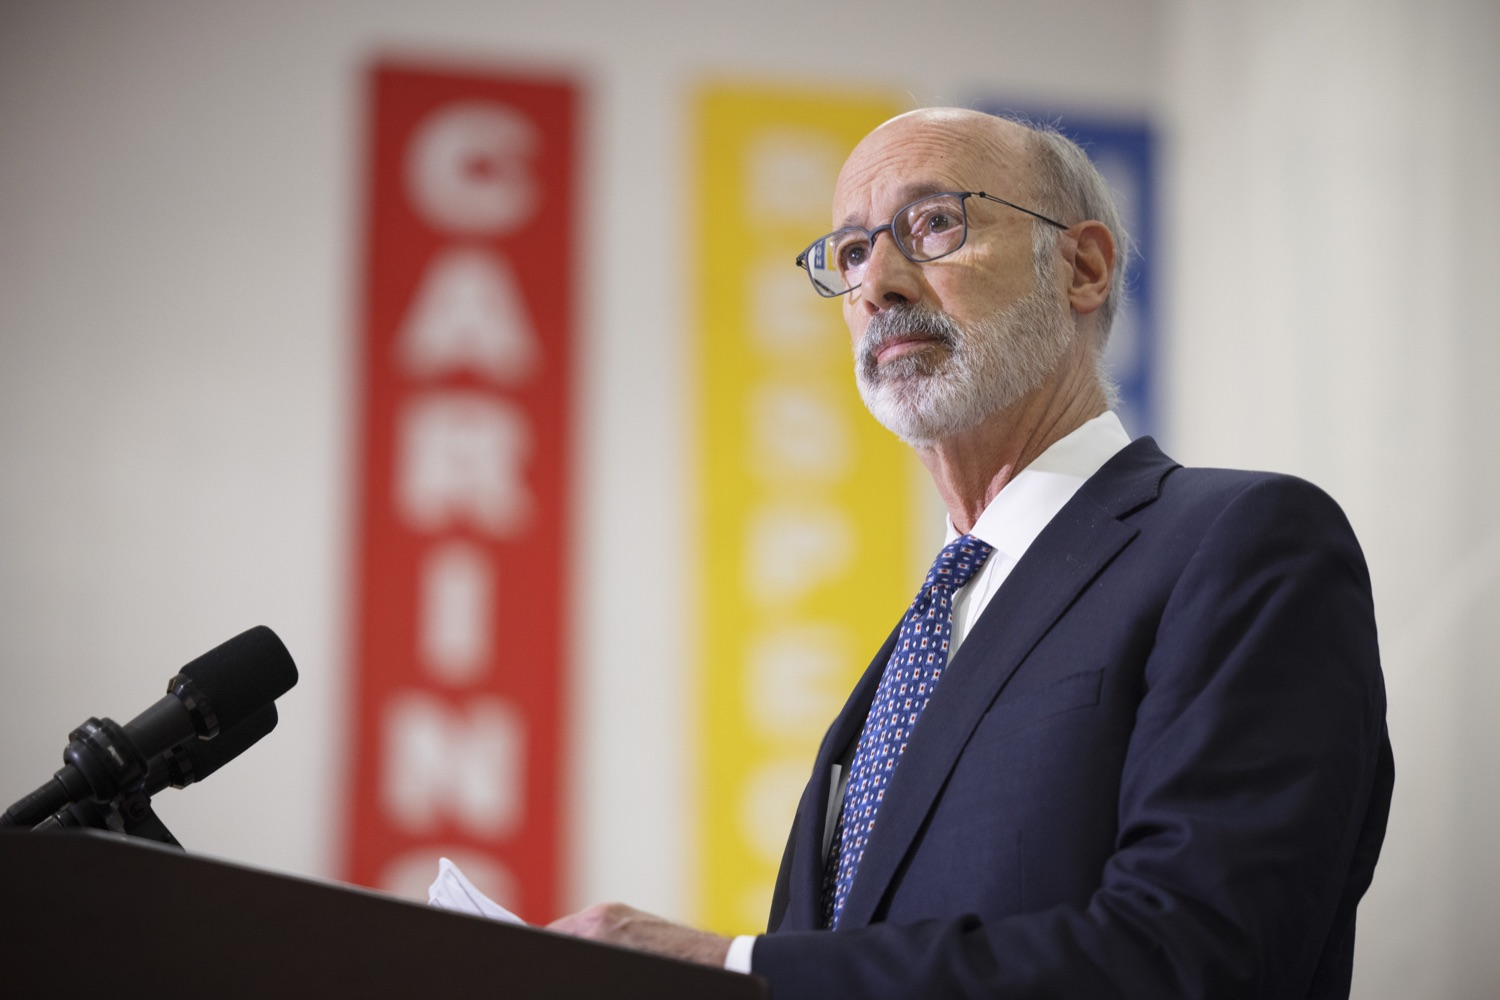 """<a href=""""https://filesource.wostreaming.net/commonwealthofpa/photo/20078_gov_gunviolence_dz_001.jpg"""" target=""""_blank"""">⇣Download Photo<br></a>Pennsylvania Governor Tom Wolf speaking with the press.  Governor Tom Wolf today joined state lawmakers to remind communities and organizations that $24 million in state funding is available to address community violence.  Philadelphia, PA - September 23, 2021"""